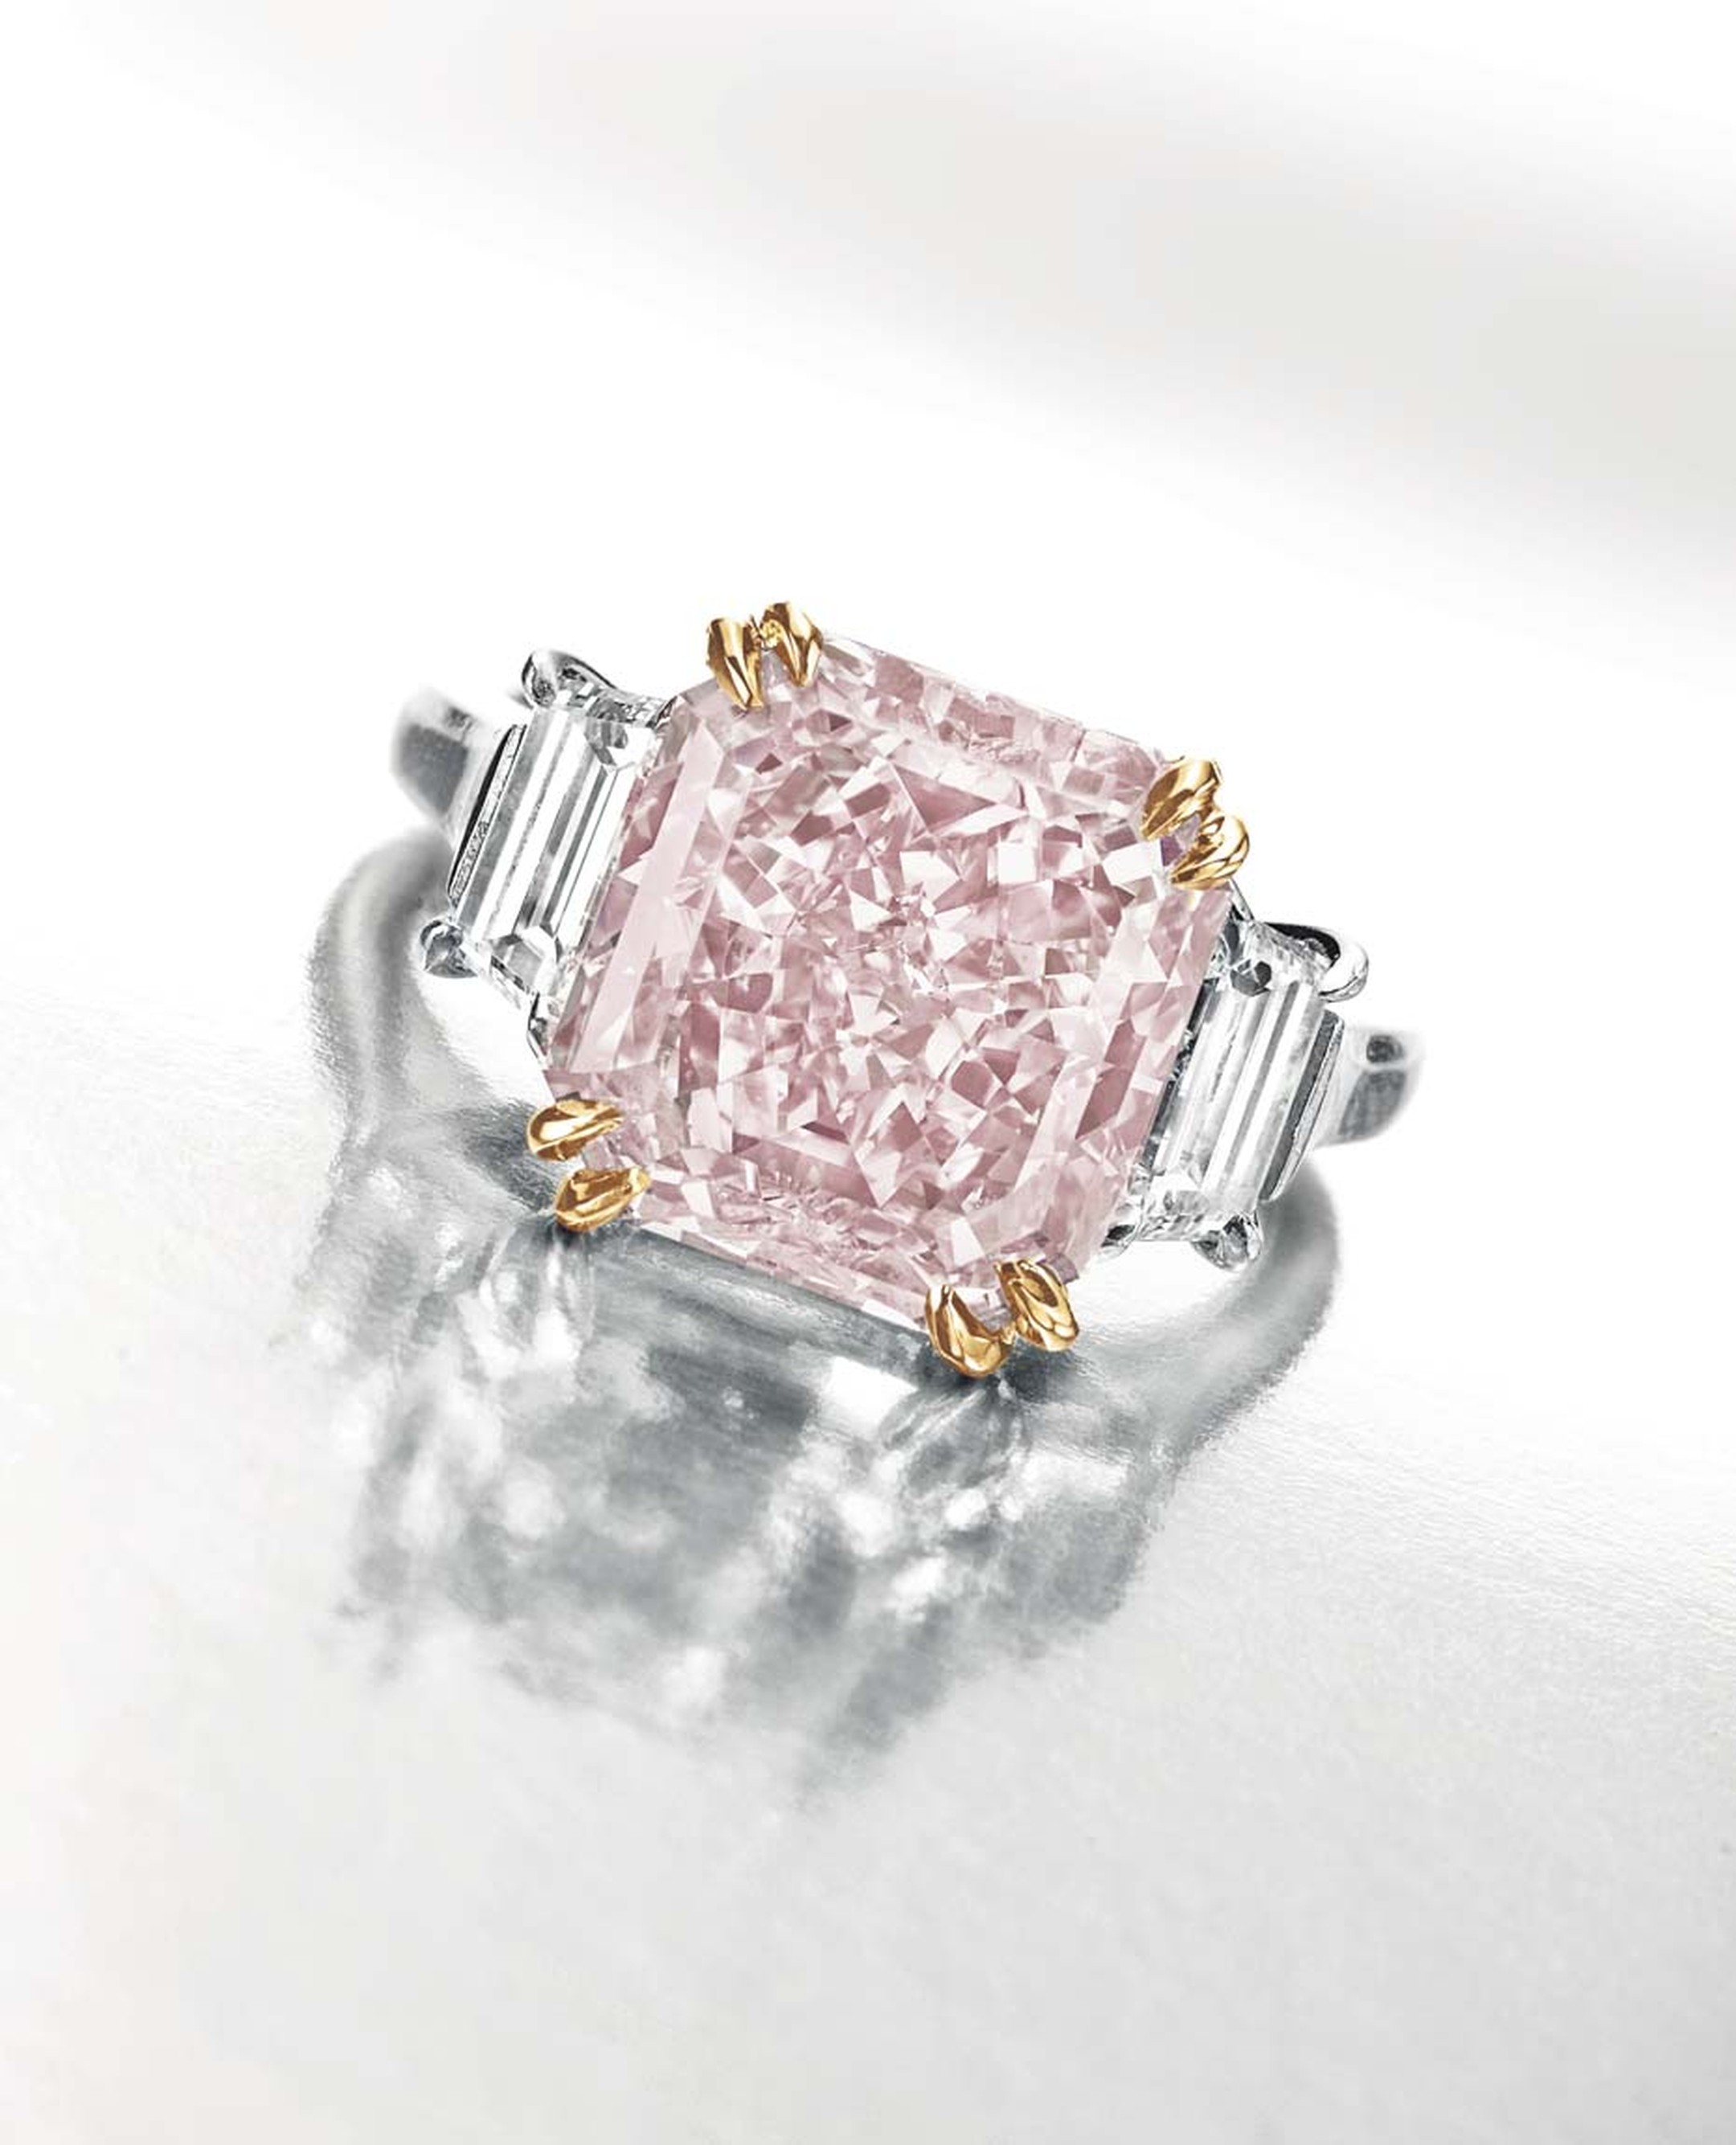 Lot 131, an important coloured diamond and diamond ring in platinum and rose gold by Harry Winston, set with a rectangular-cut fancy intense pink diamond weighing approximately 6.10ct, from the private collection of animal rights campaigner Riki Shaw (est